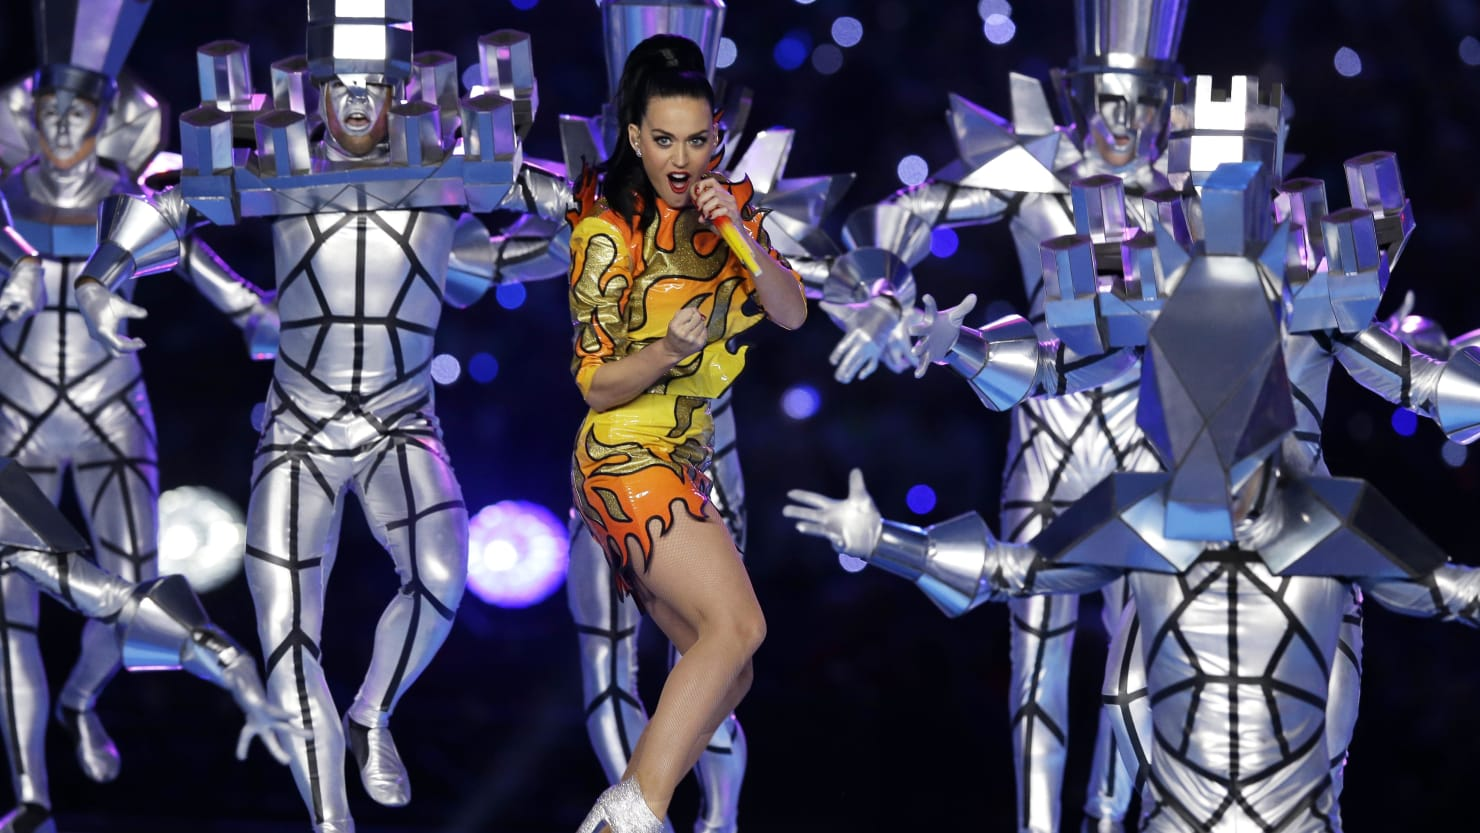 the evolution of super bowl The super bowl halftime show has evolved into one of the biggest stages in music: more than 115 million people watched bruno mars and the red hot chili peppers last year, according to the nfl.